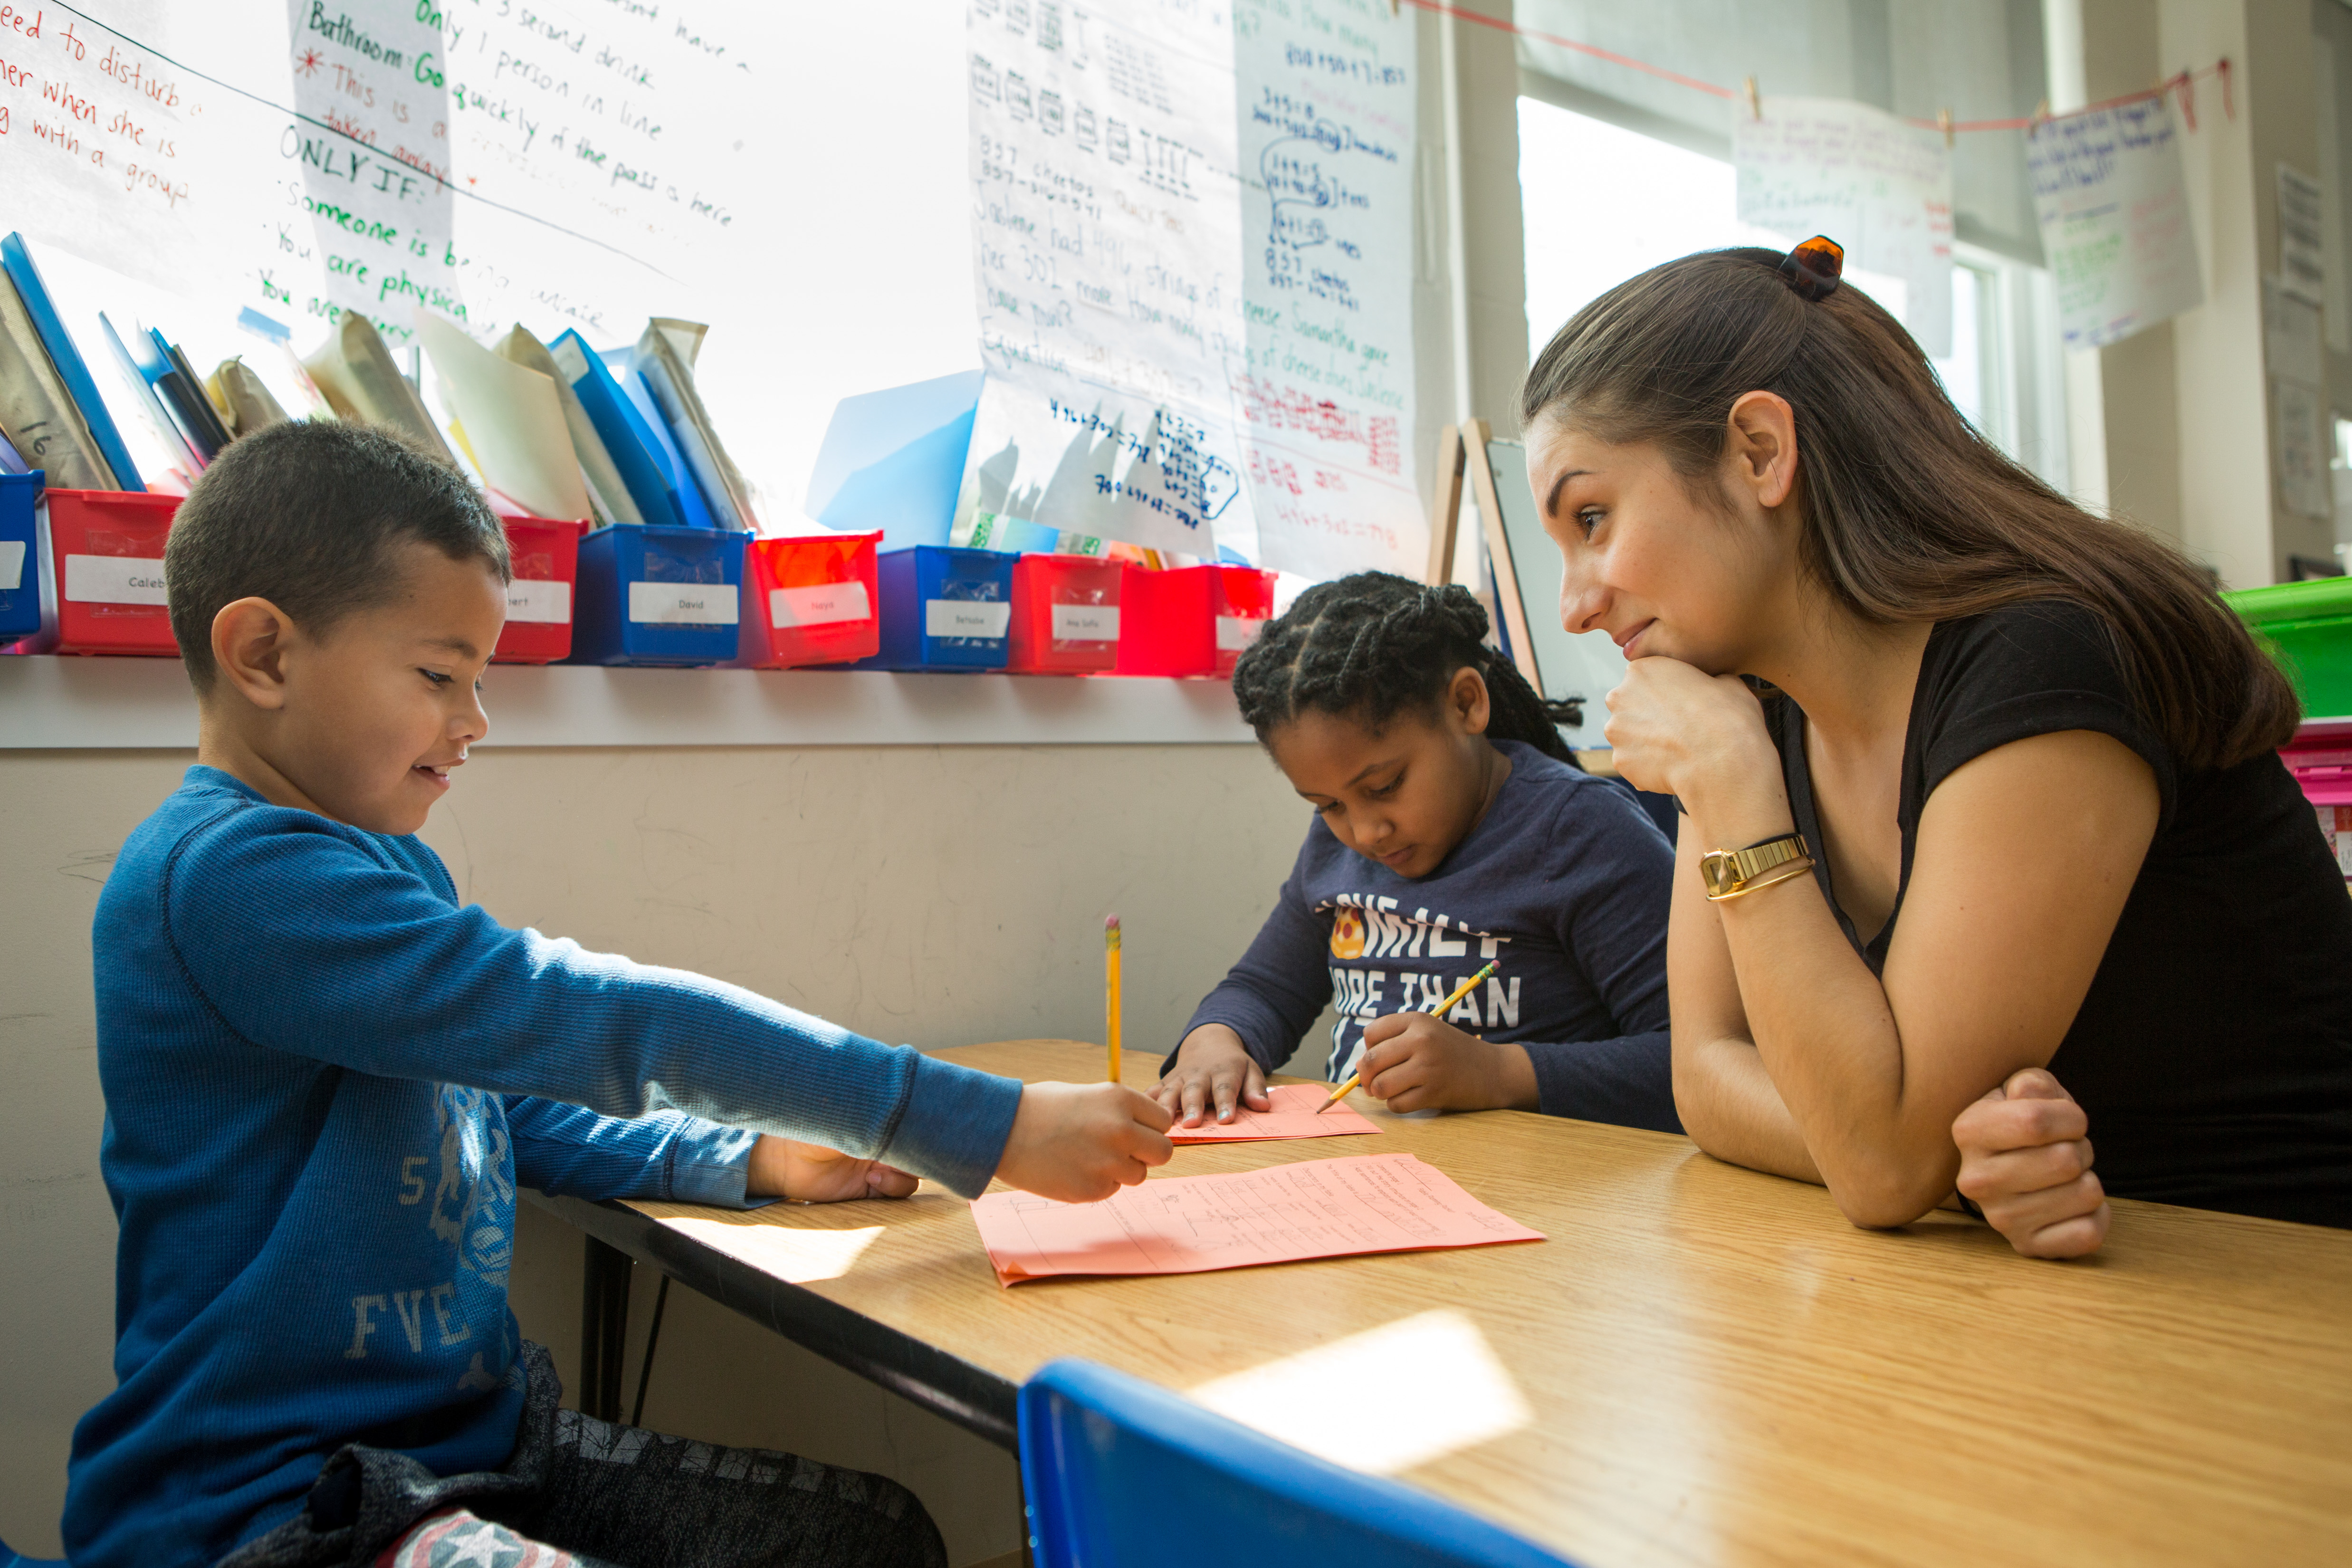 A smiling teacher sits at a table in a school classroom, looking on as a young boy and girl work on writing.